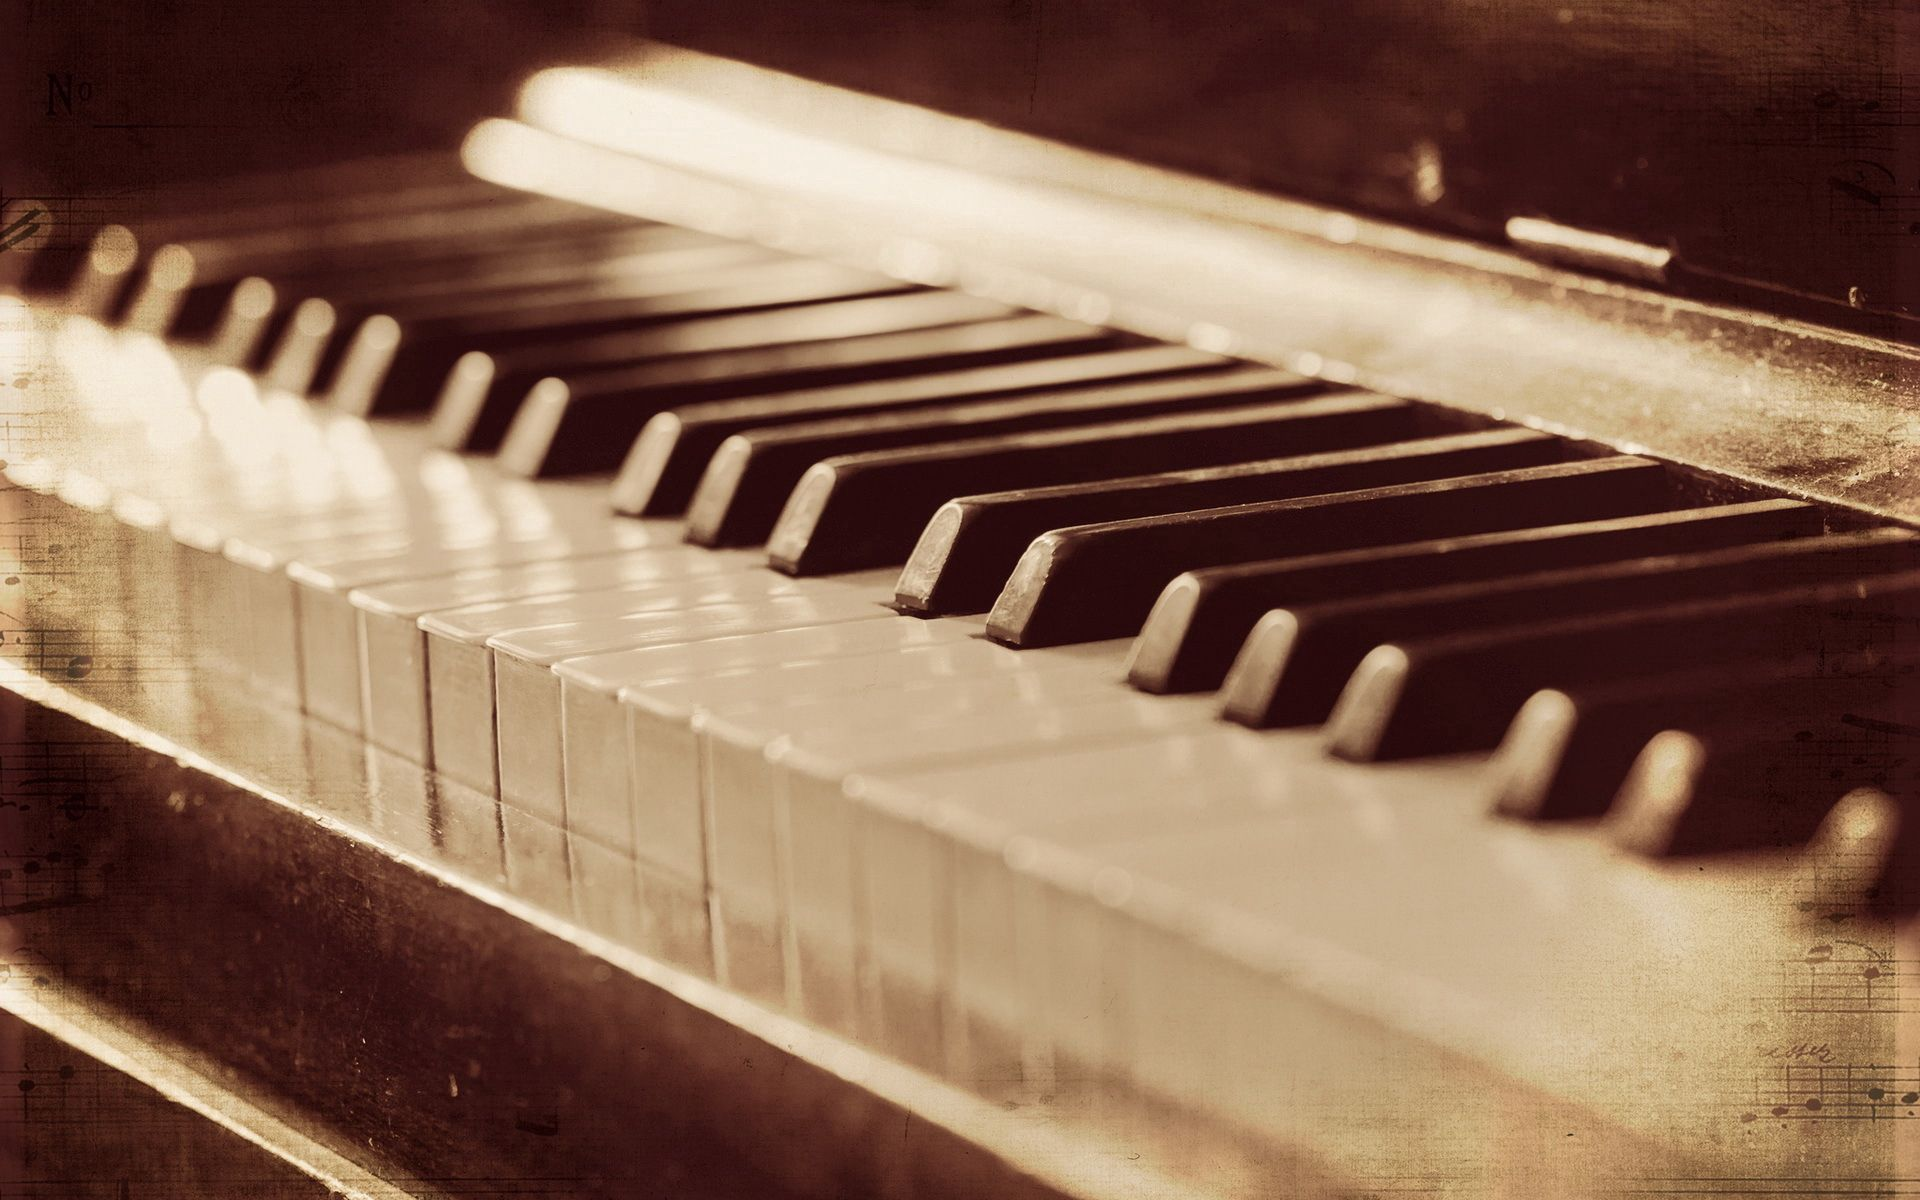 81533 download wallpaper Miscellanea, Miscellaneous, Background, Style, Piano, Music screensavers and pictures for free